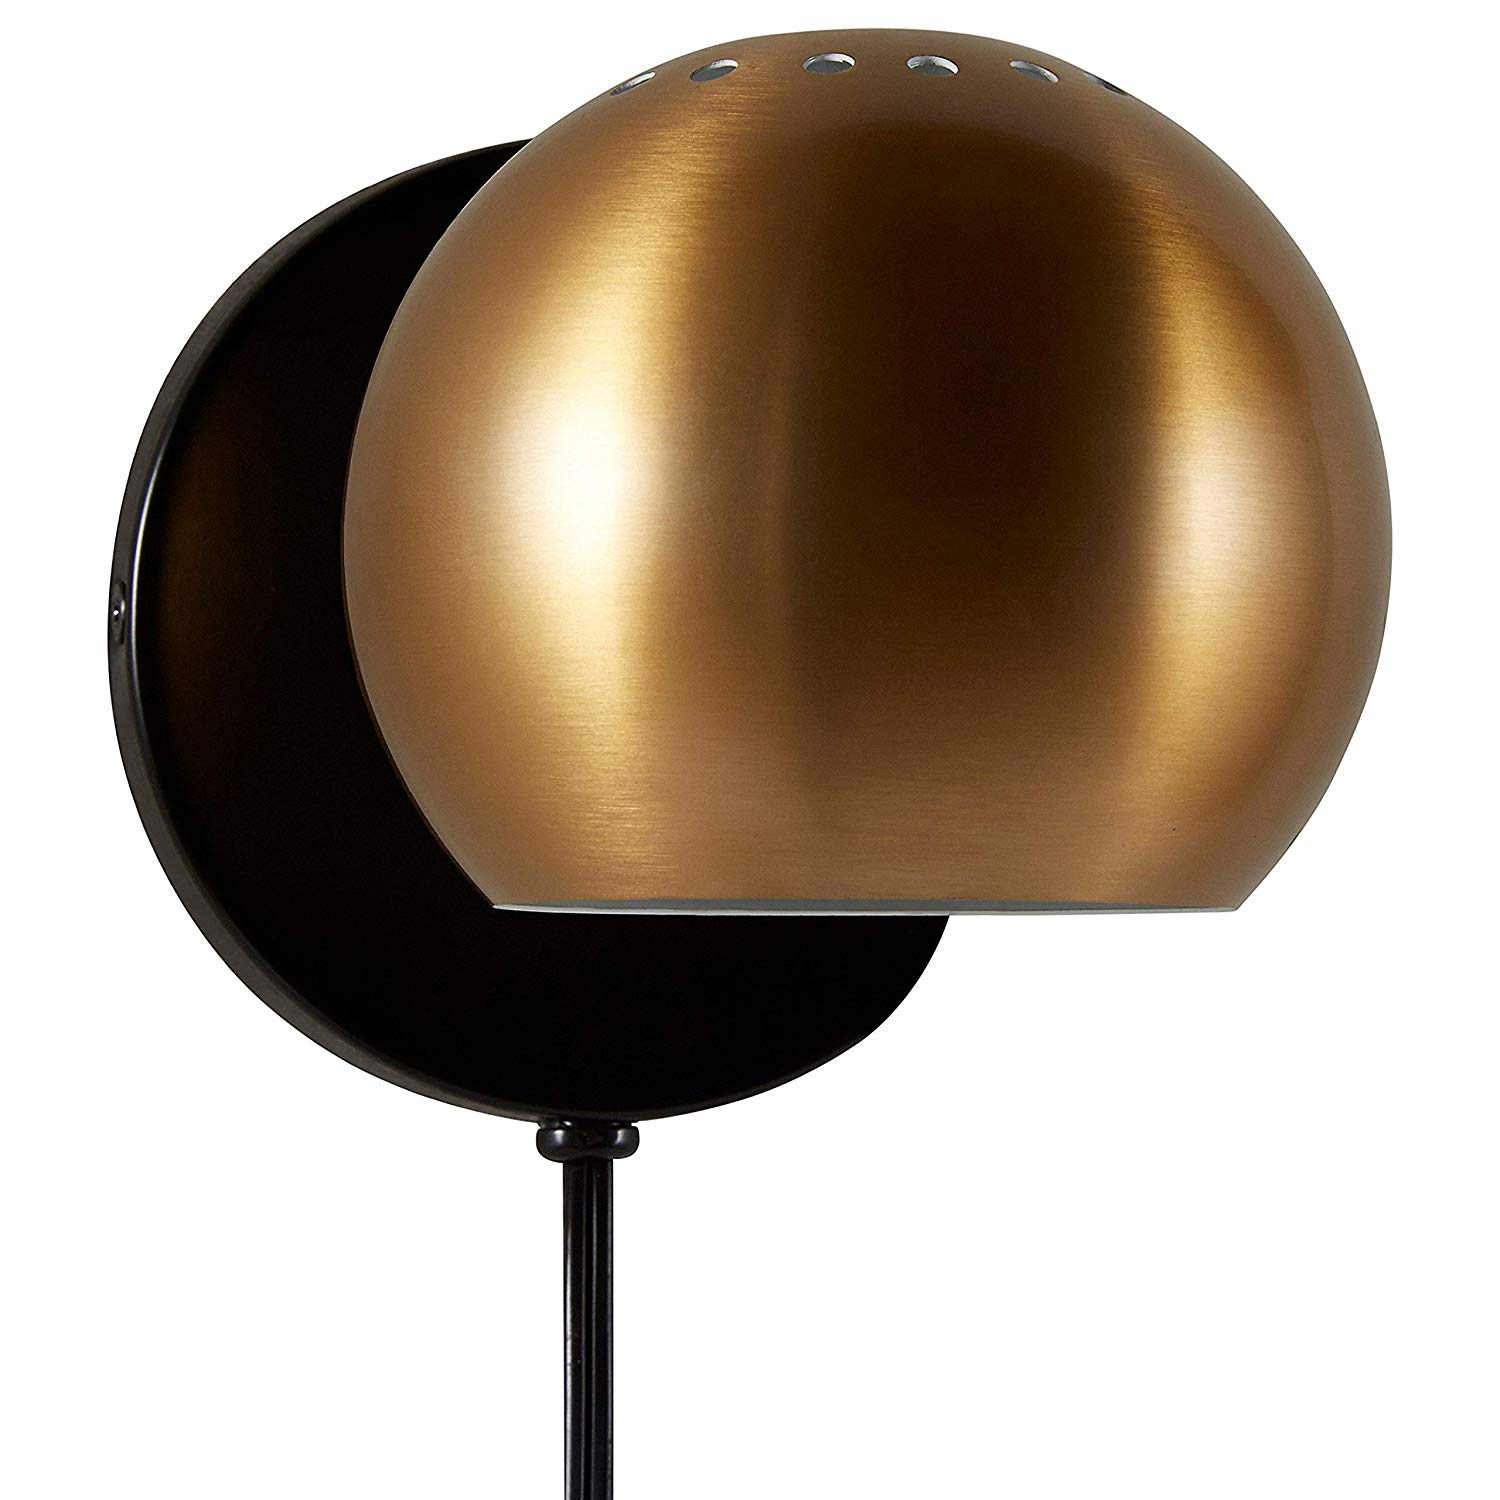 "Rivet Gold Metal Plug-In Wall Sconce 7"" - $29.99"